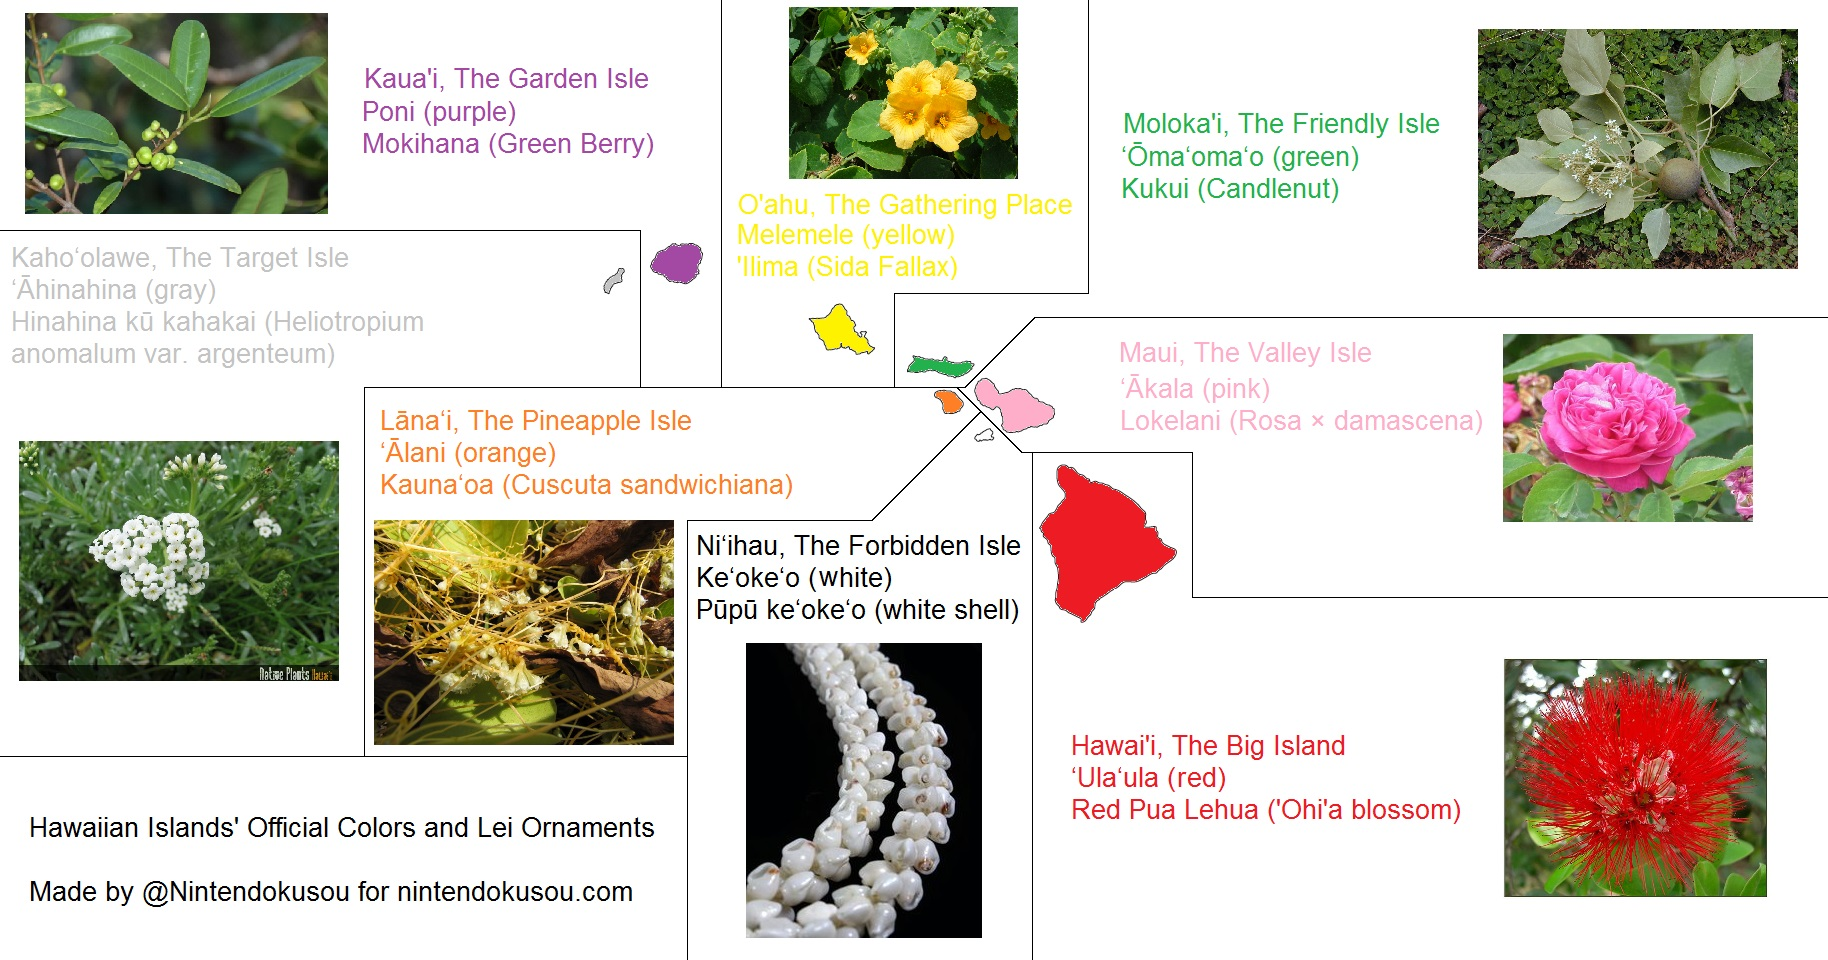 hawaiian-islands-official-colors-and-lei-ornaments